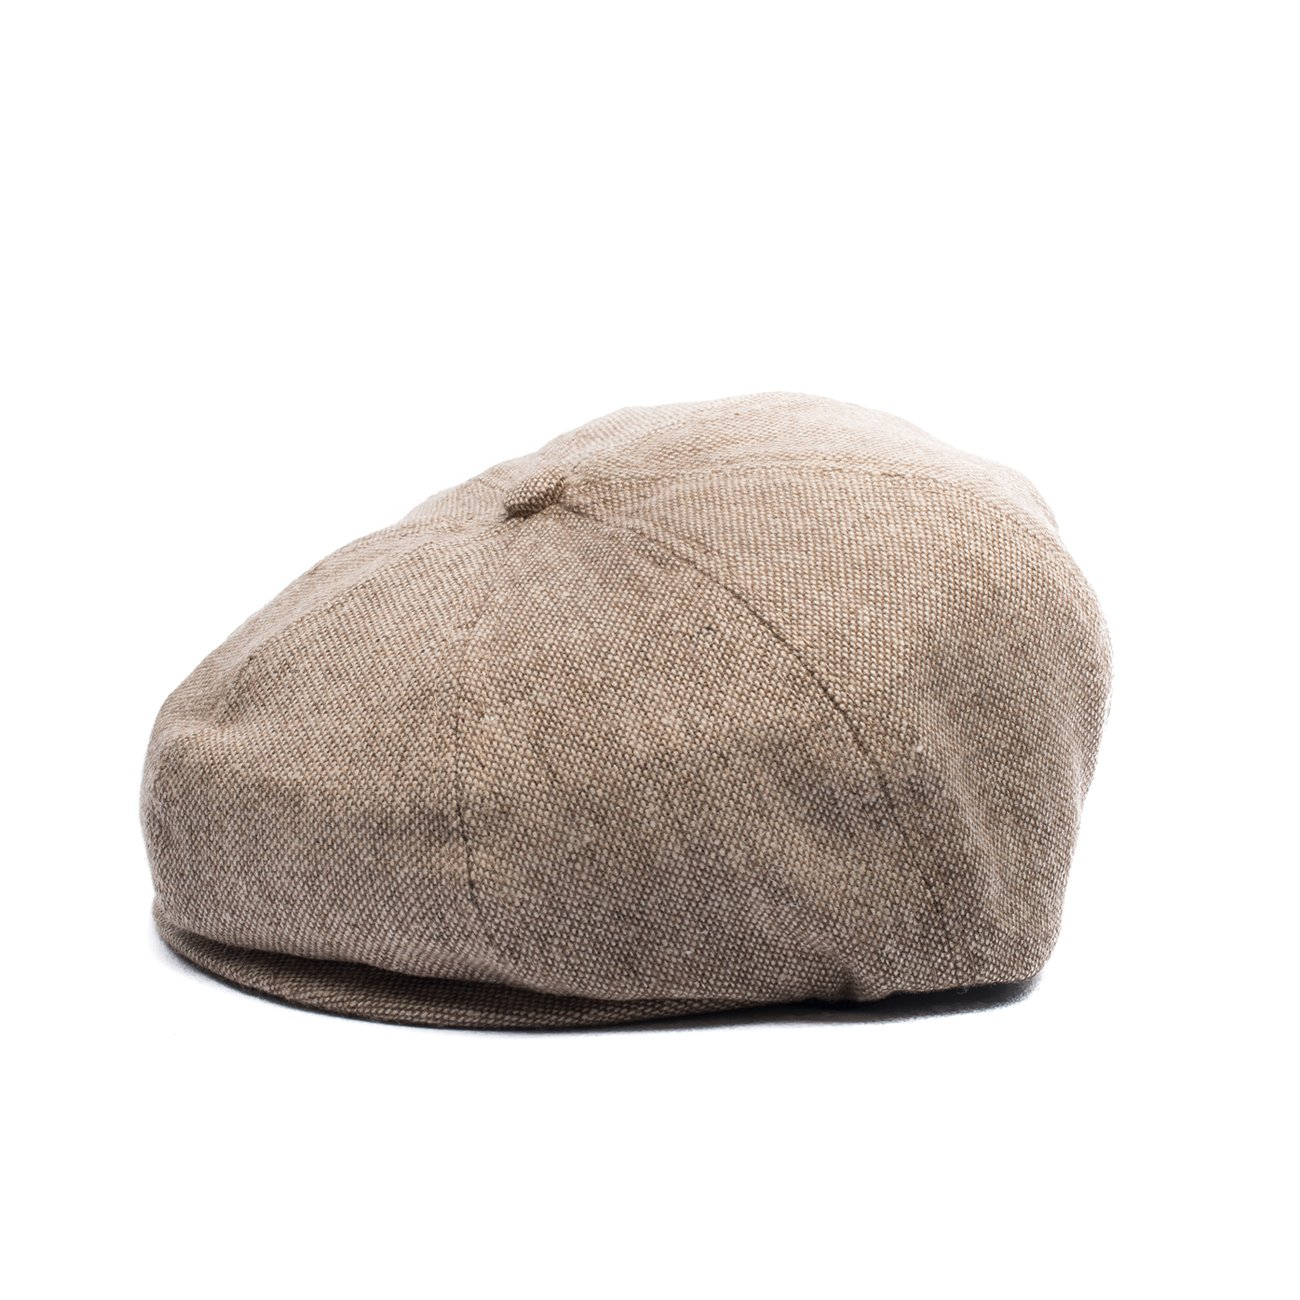 Born to Love Flat Scally Cap - Baby Boy's Ring Bearer Pageboy Flat Ivy Newsboy Tweed Golf Cap Hat-(L 54 cm, Tan News)